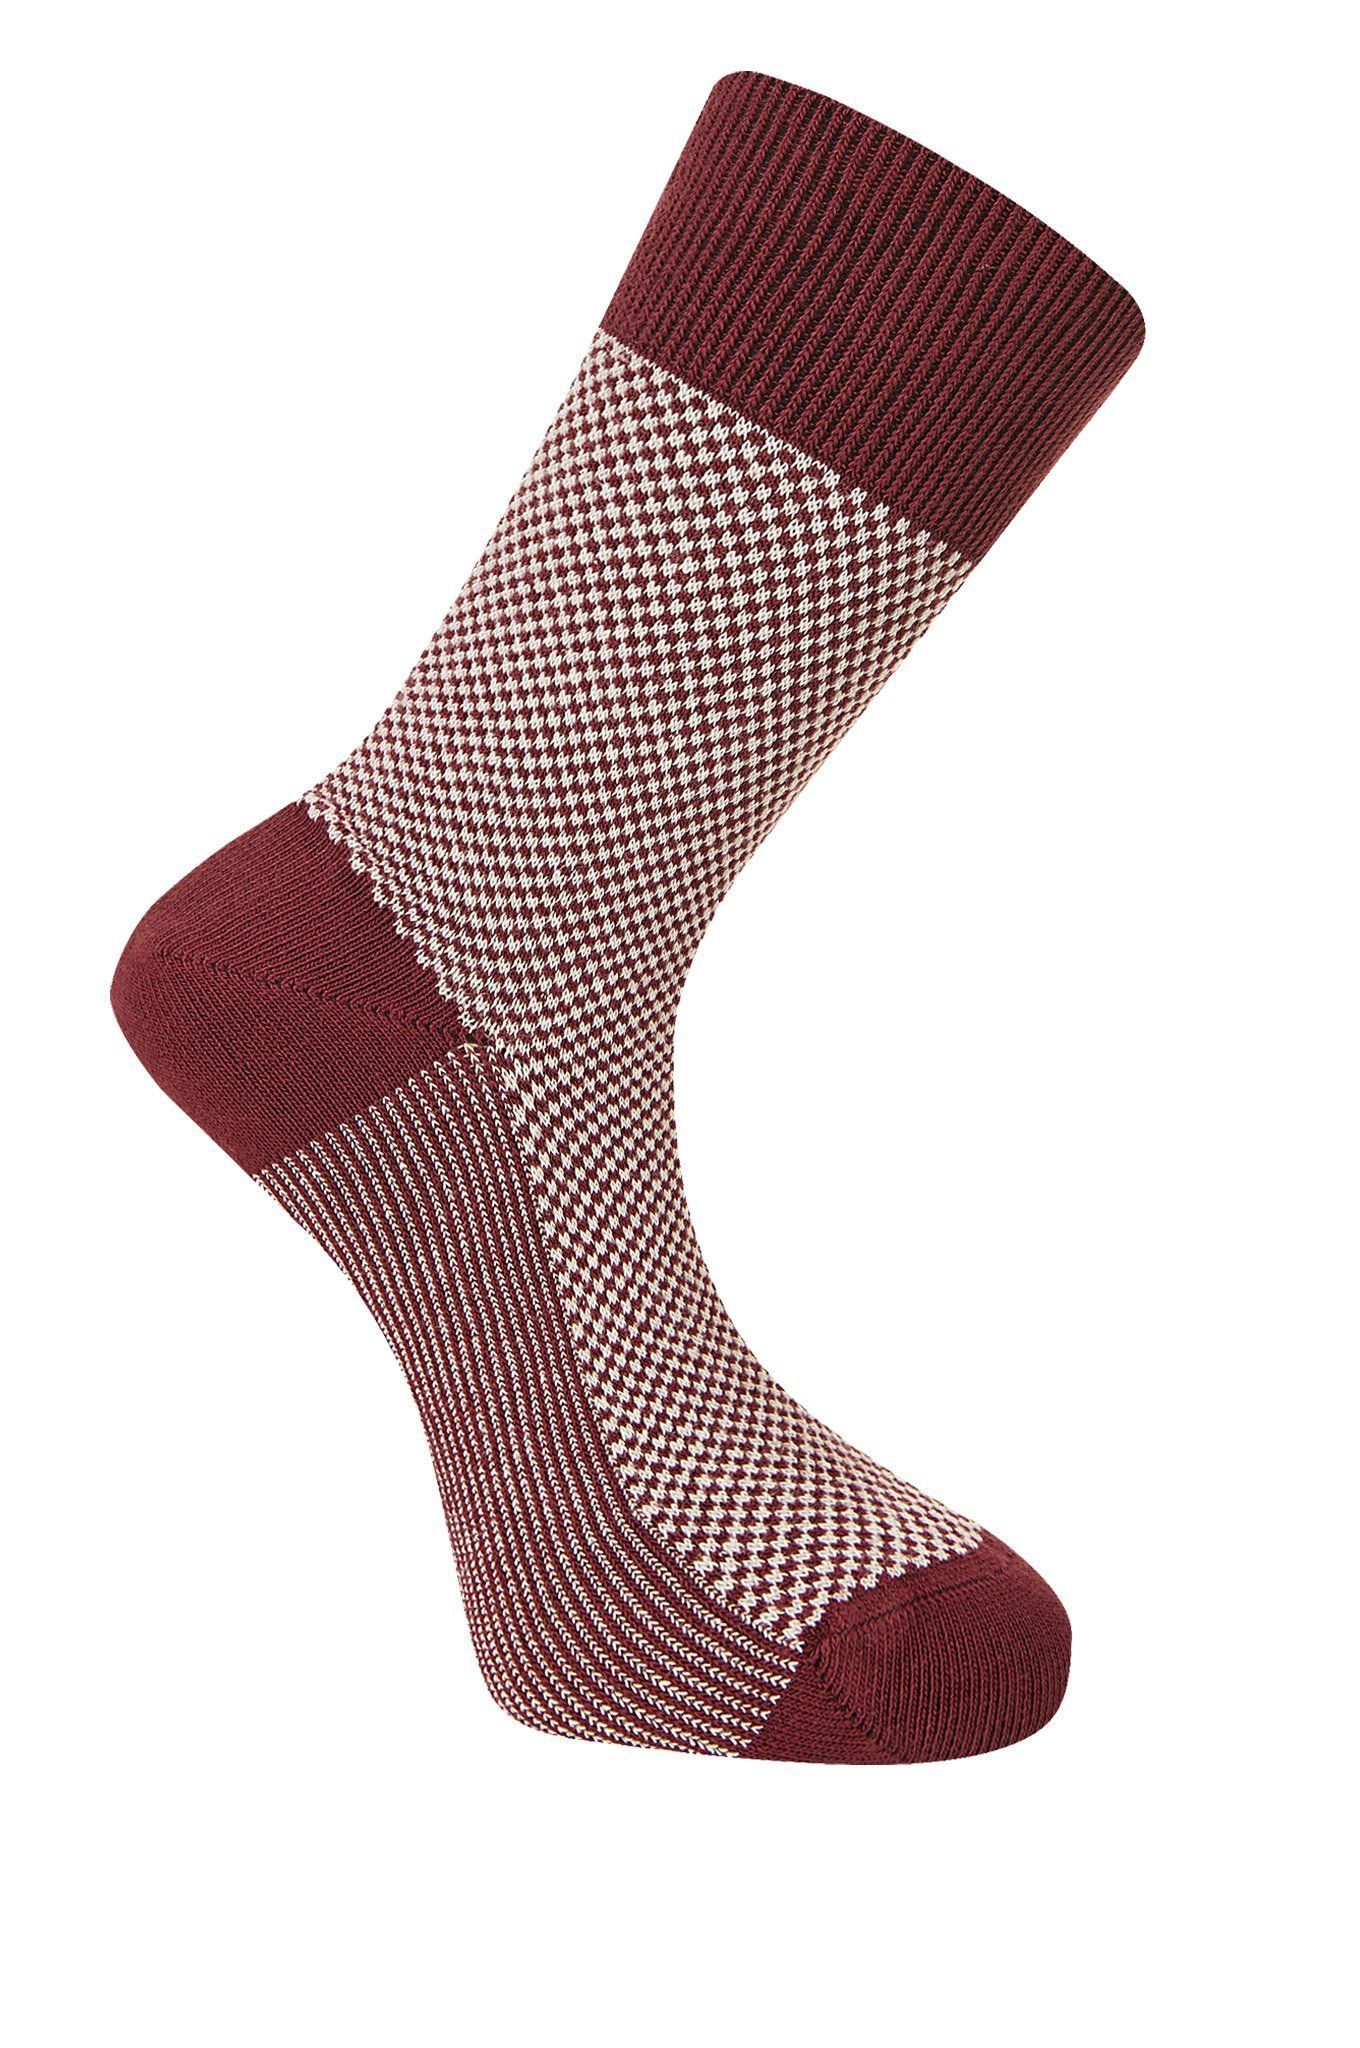 DOT Burnt Red Organic Cotton Socks - Komodo Fashion